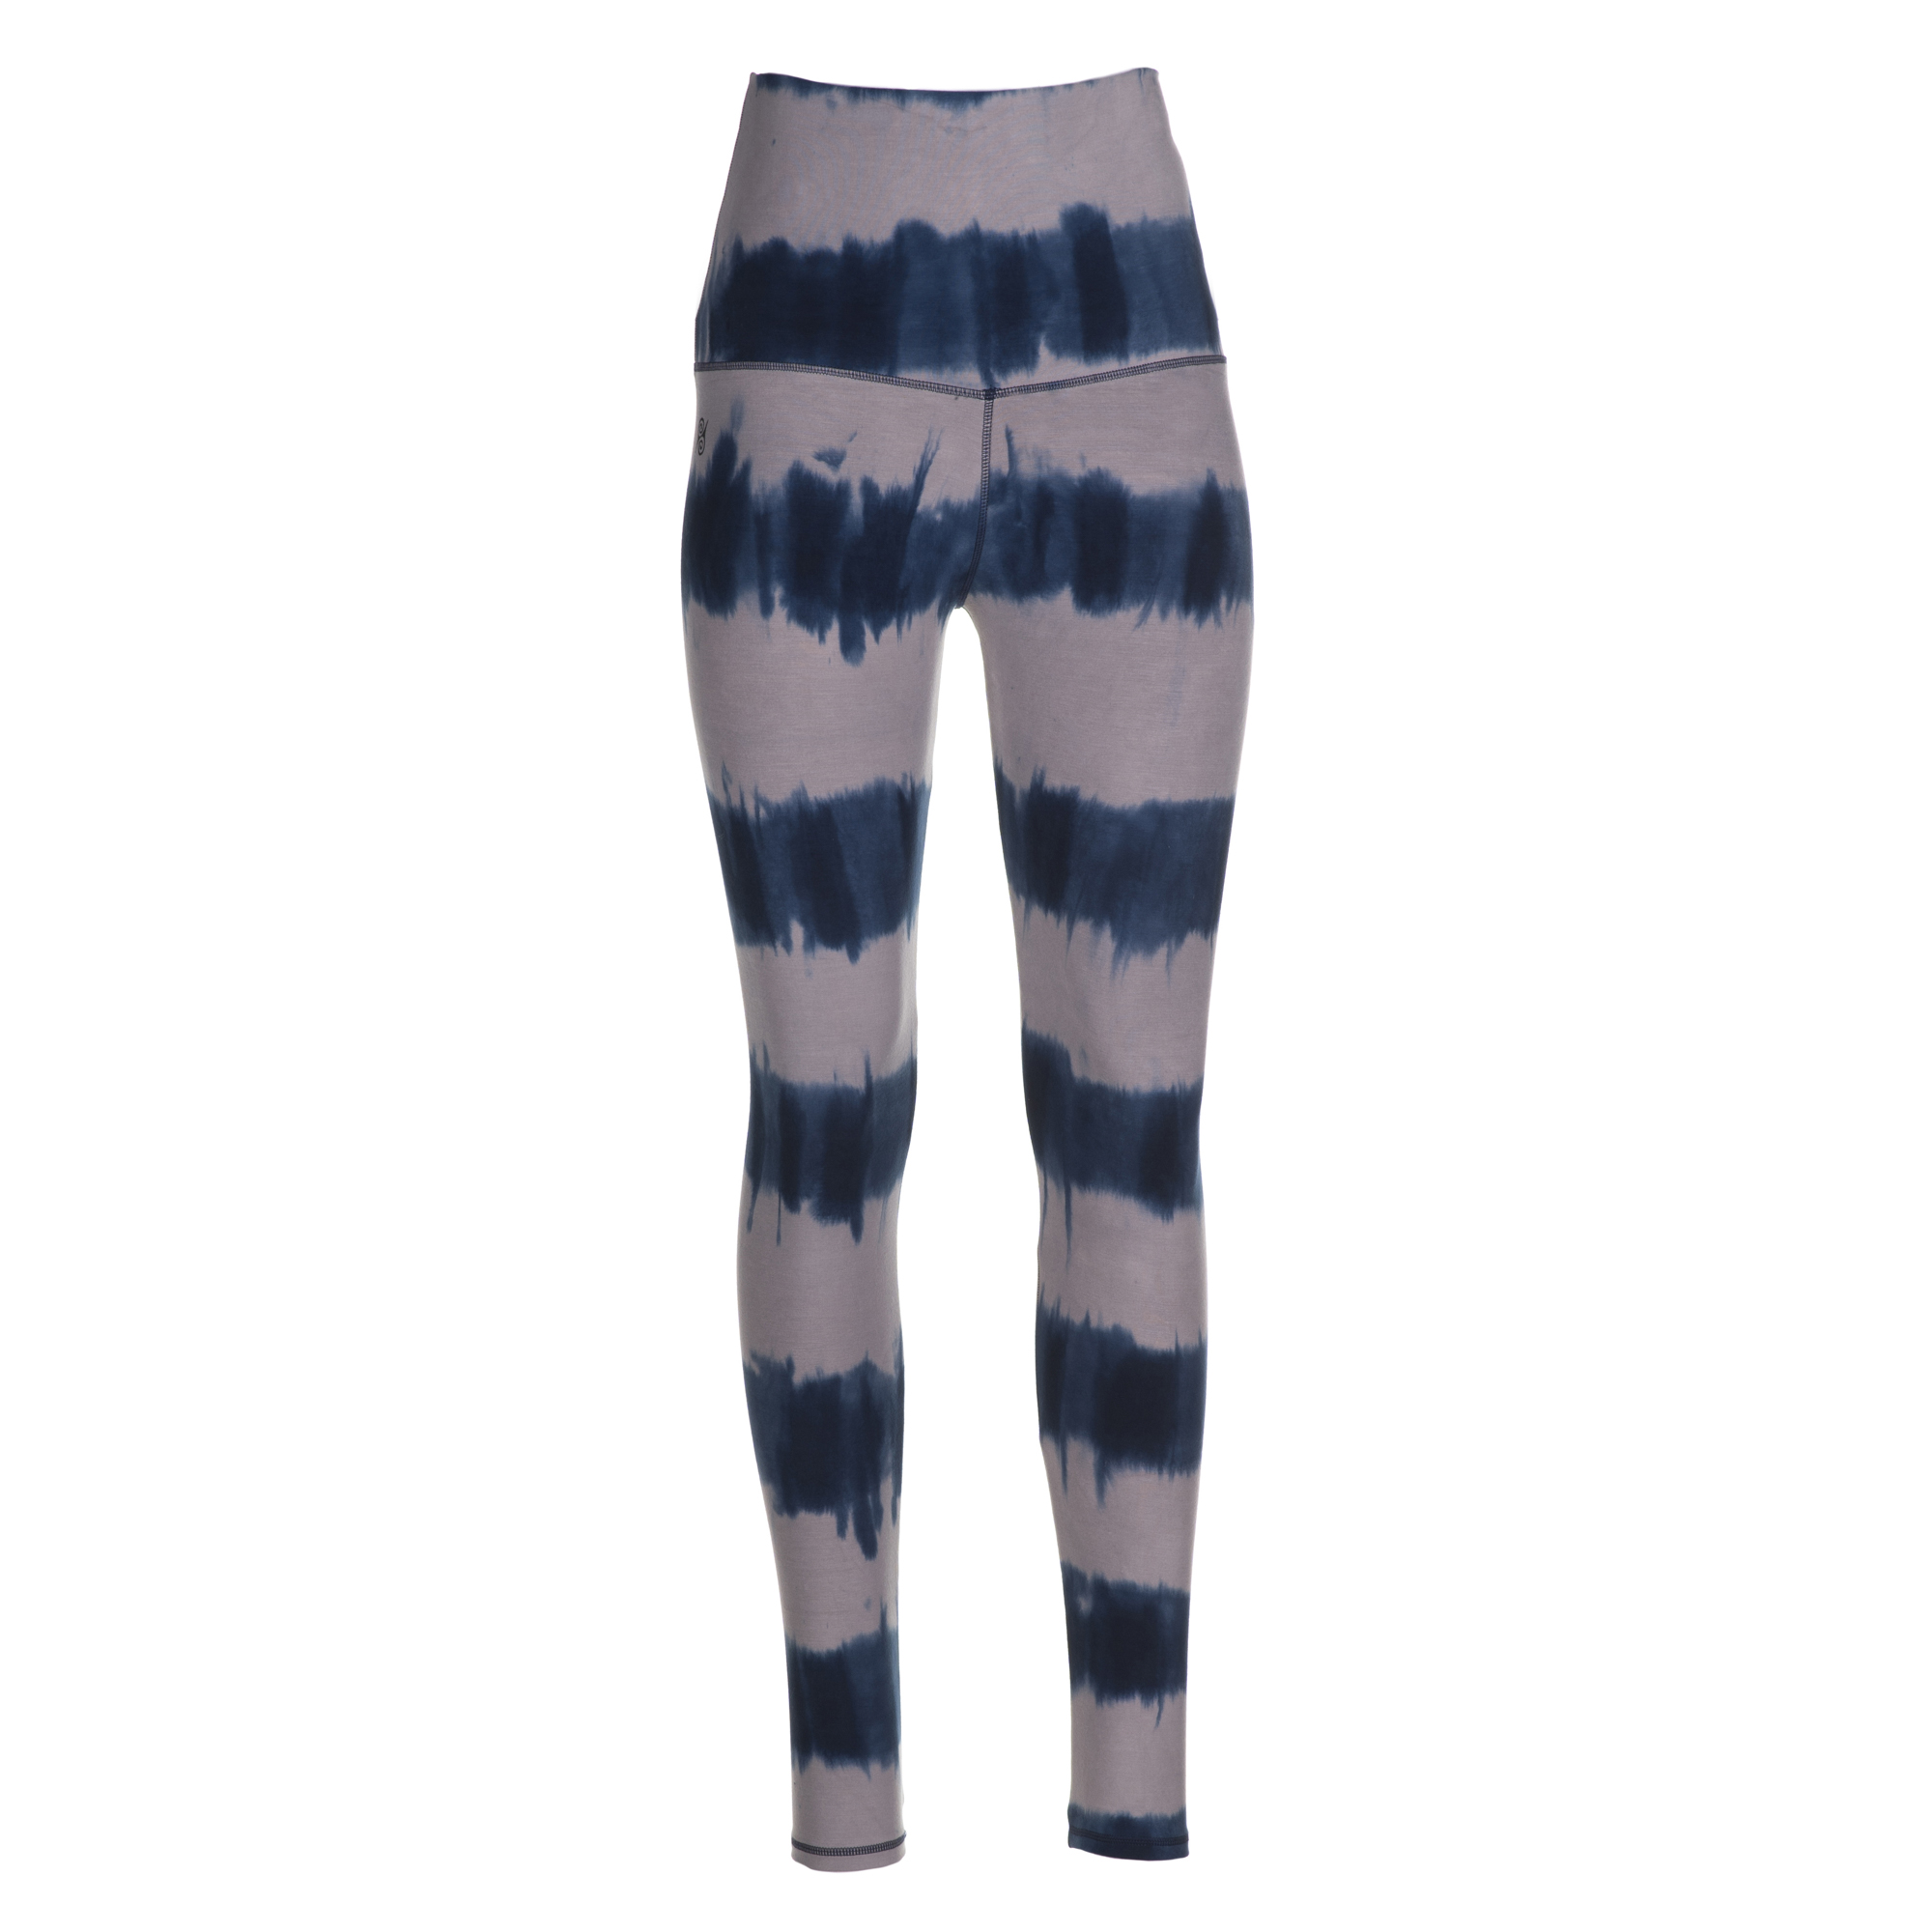 "Yoga-Batik-Leggings ""seashore"" - grau/blau"